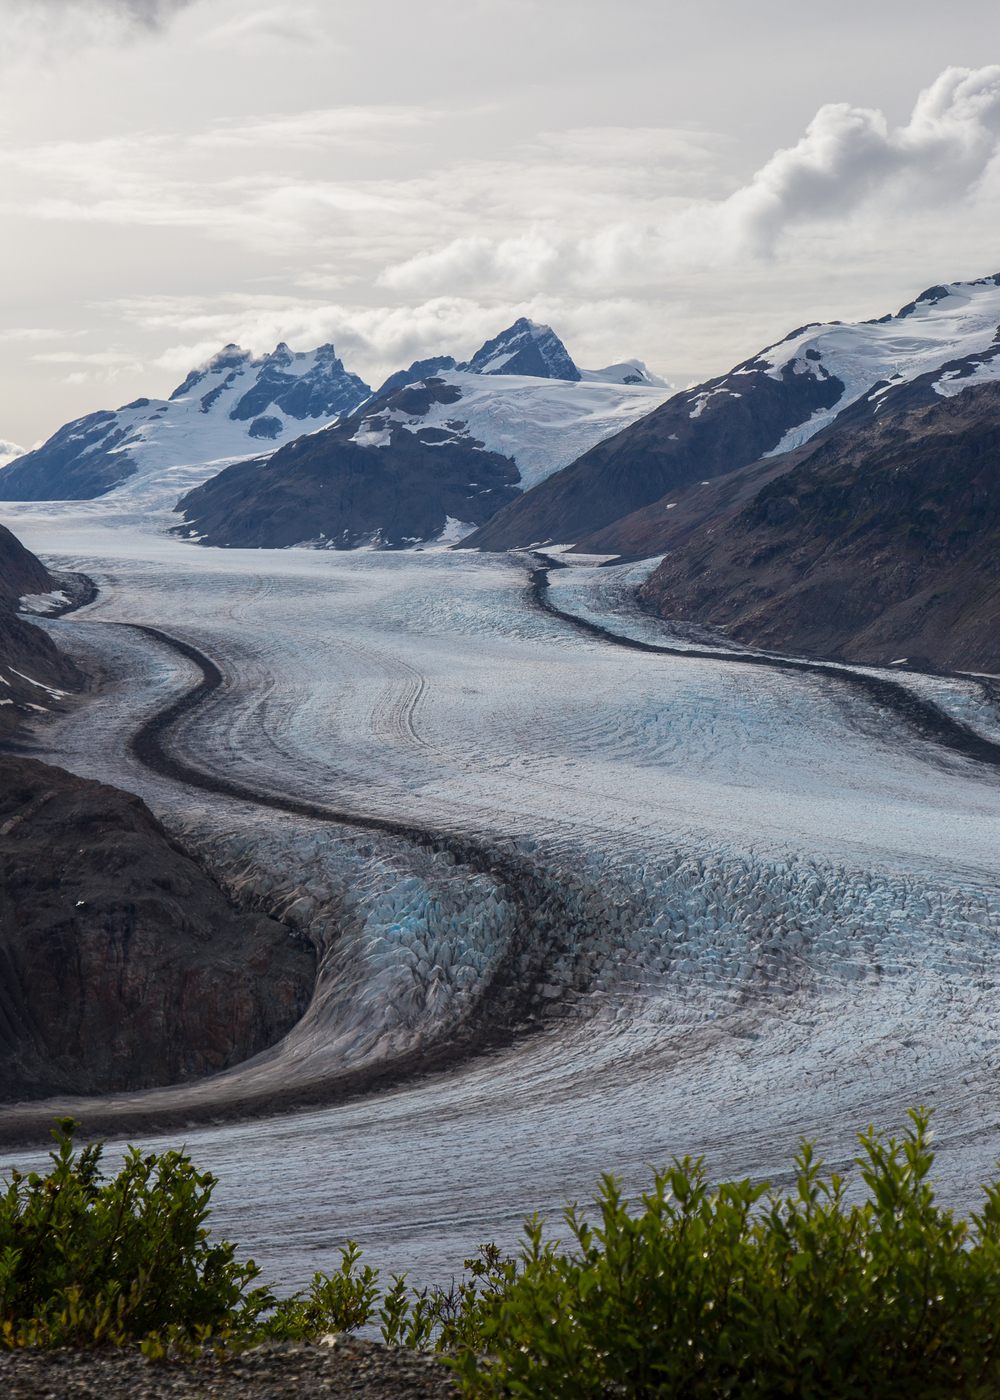 The Salmon Glacier is amazing. This huge river of ice, frozen in place and filling the valley between the mountains.